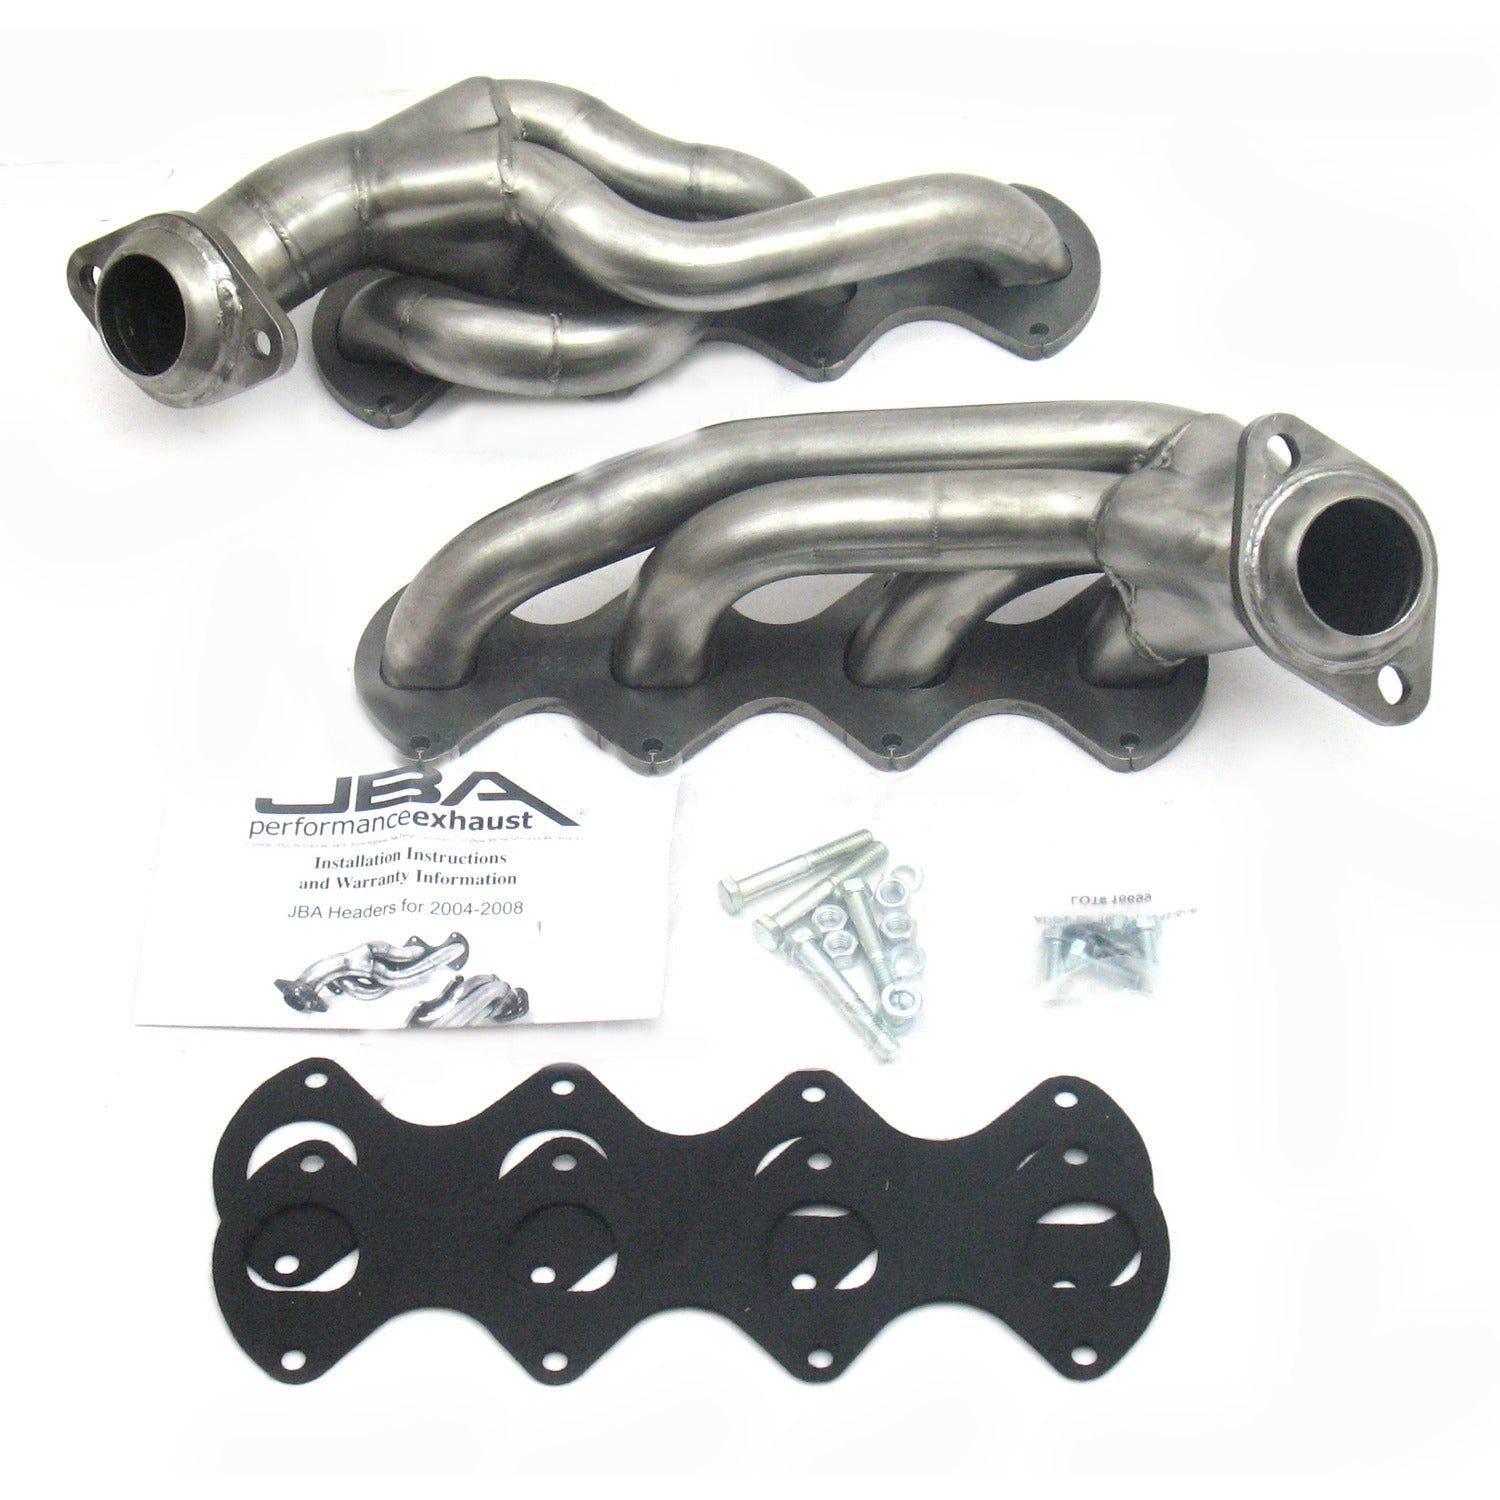 "JBA Performance Exhaust 1676S 1 5/8"" Header Shorty Stainless Steel 04-10 Ford F-150 5.4L 3 Valve"